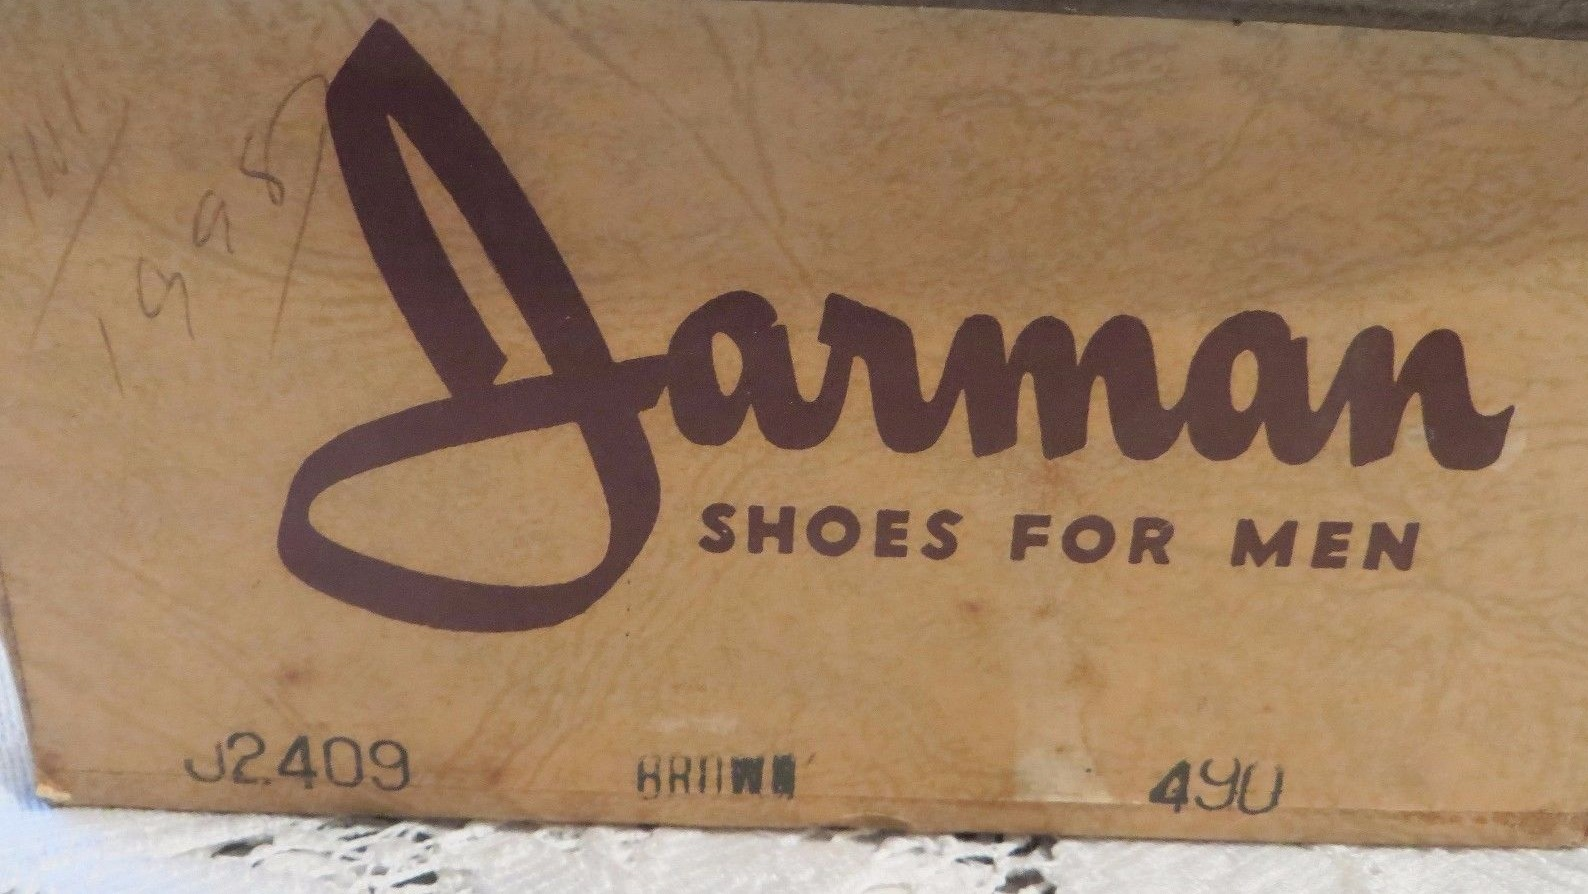 Pair of Jarman 490 or 9 D shoes